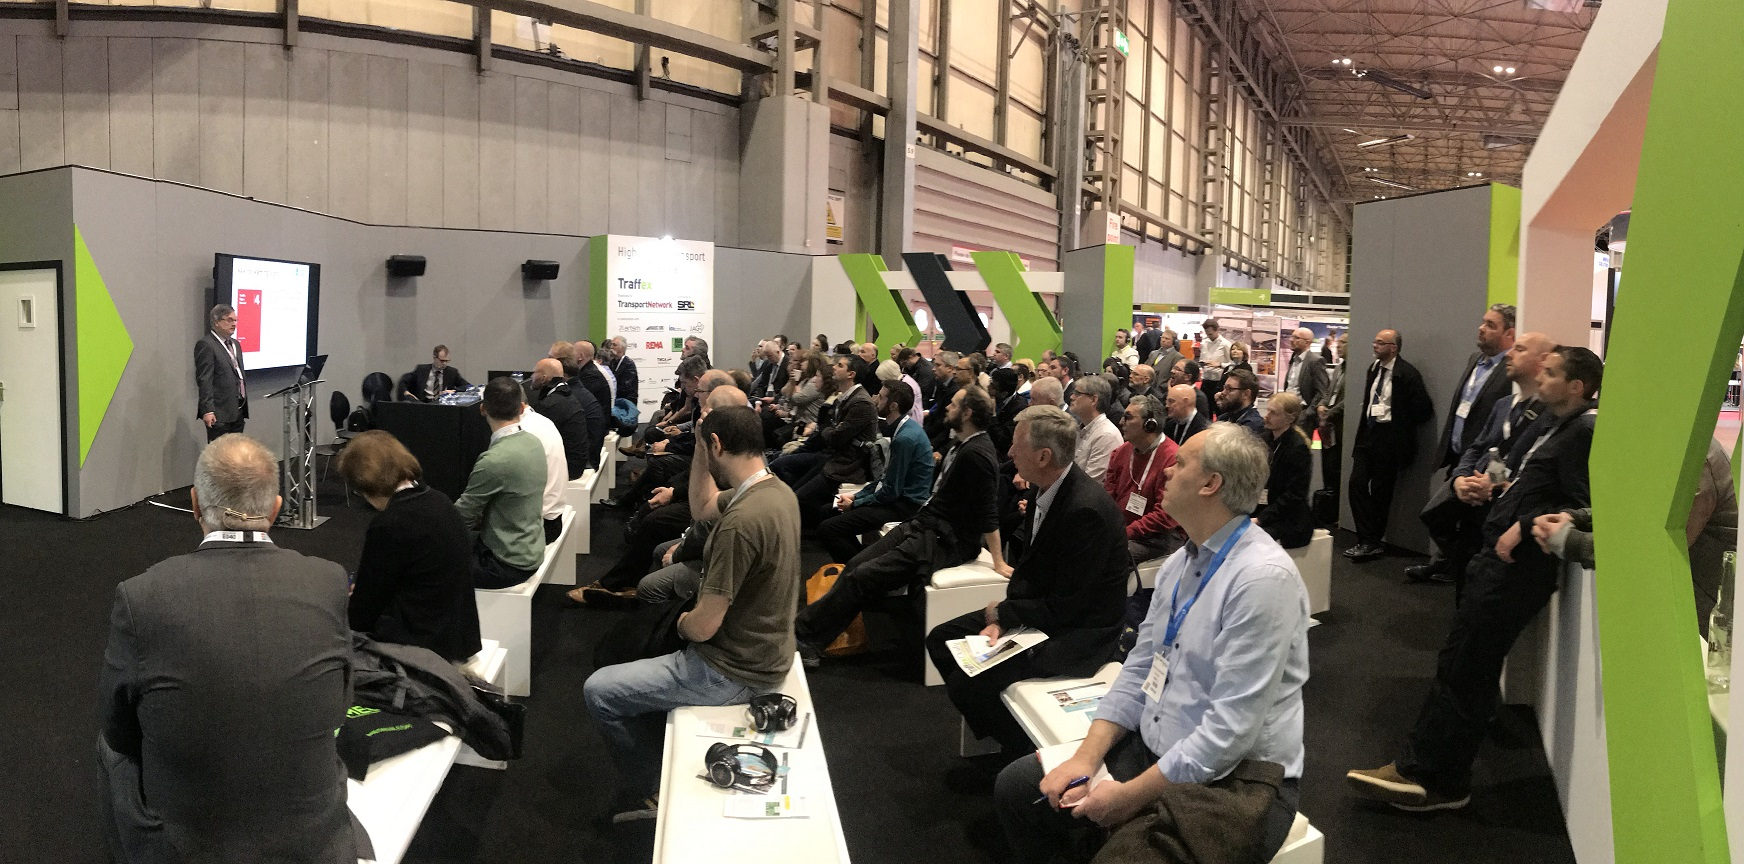 Simon Morgan speaking at Traffex 19